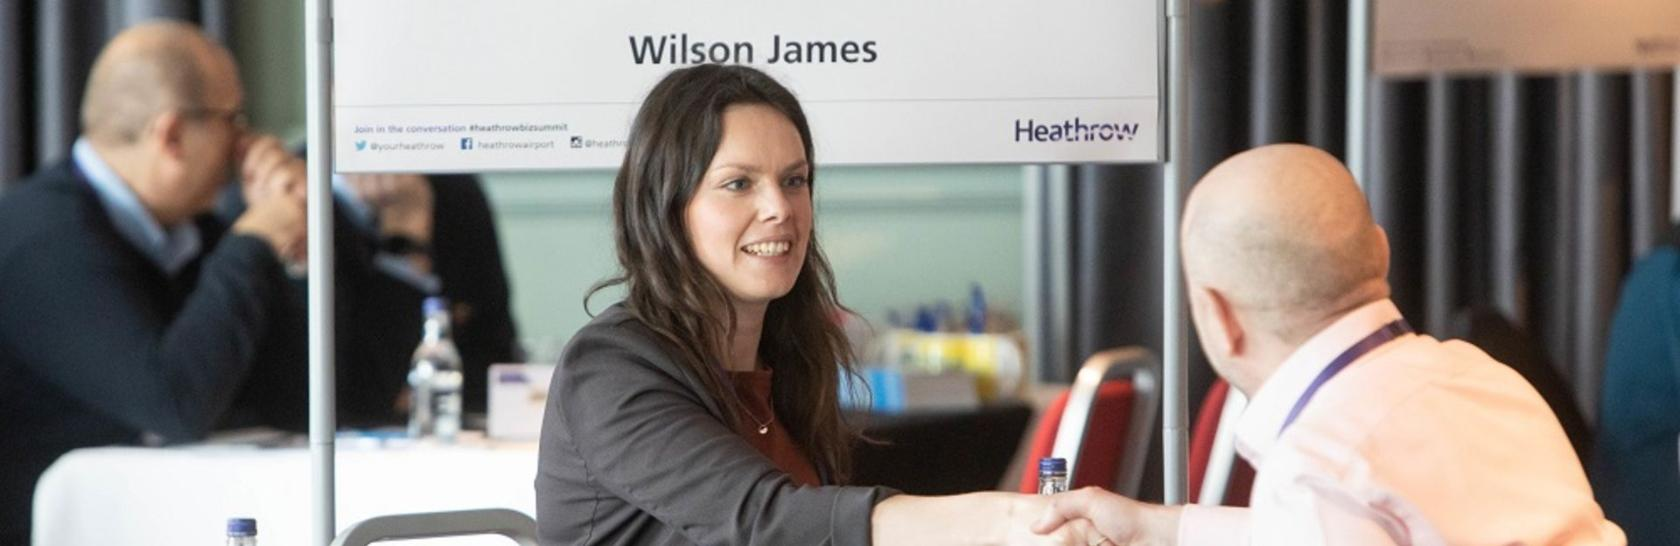 Book your place at the Heathrow Business summit